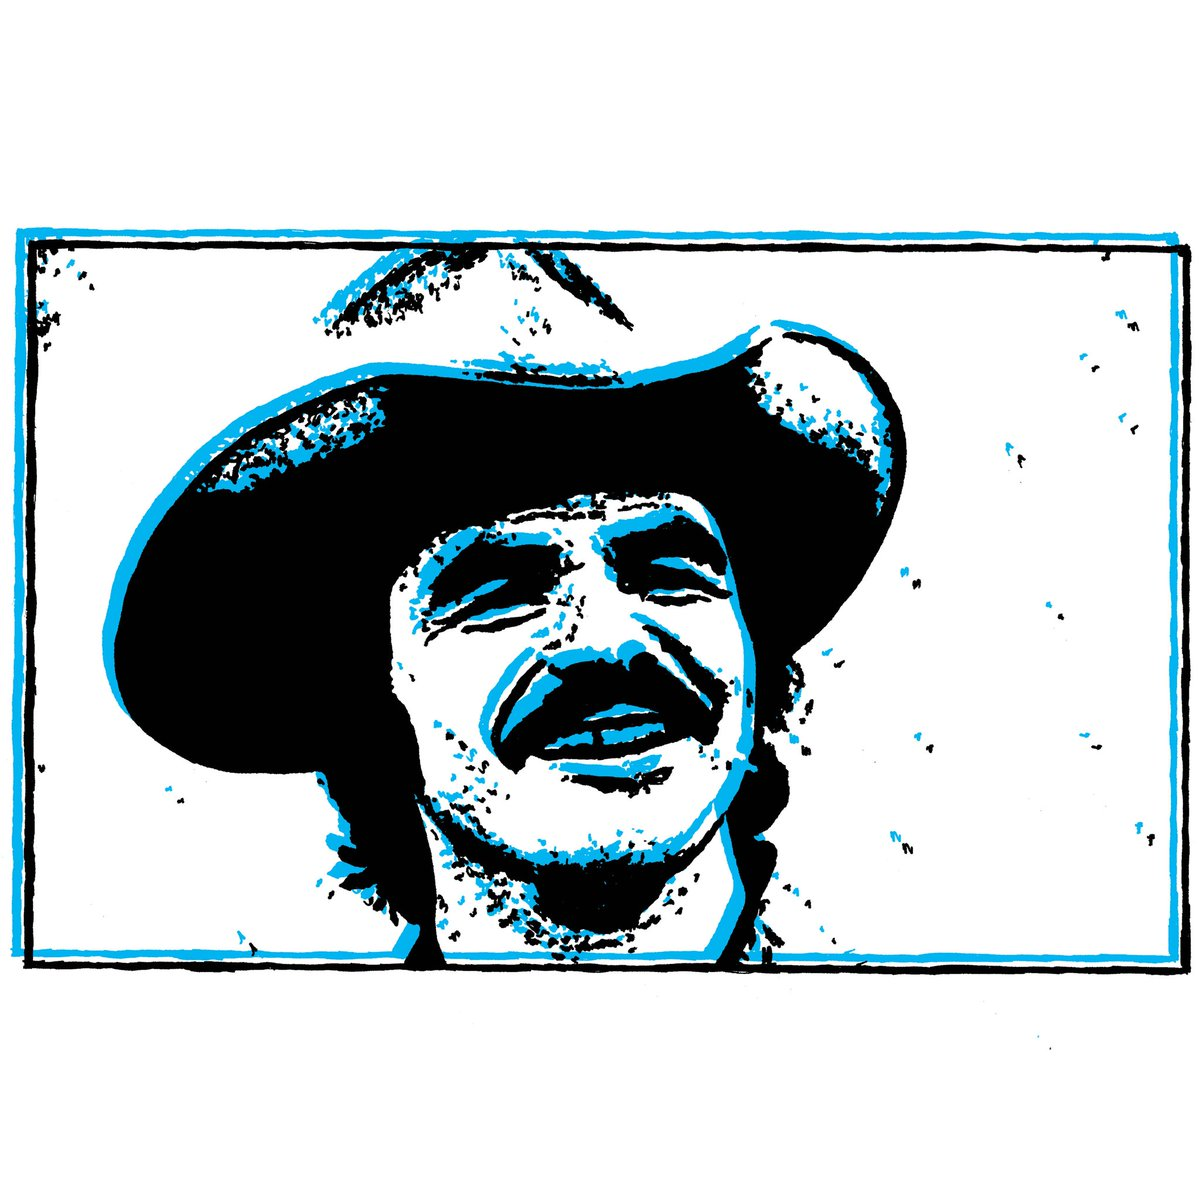 """For the money, for the glory, and for the fun. Mostly for the money ..."" . Part 2 in a new #MovieArt #triptych inspired by #SmokeyAndTheBandit! Here's #BurtReynolds as #Bandit! . #ActionMovies #ComedyMovies #PopArt #Drawing #CMYK"